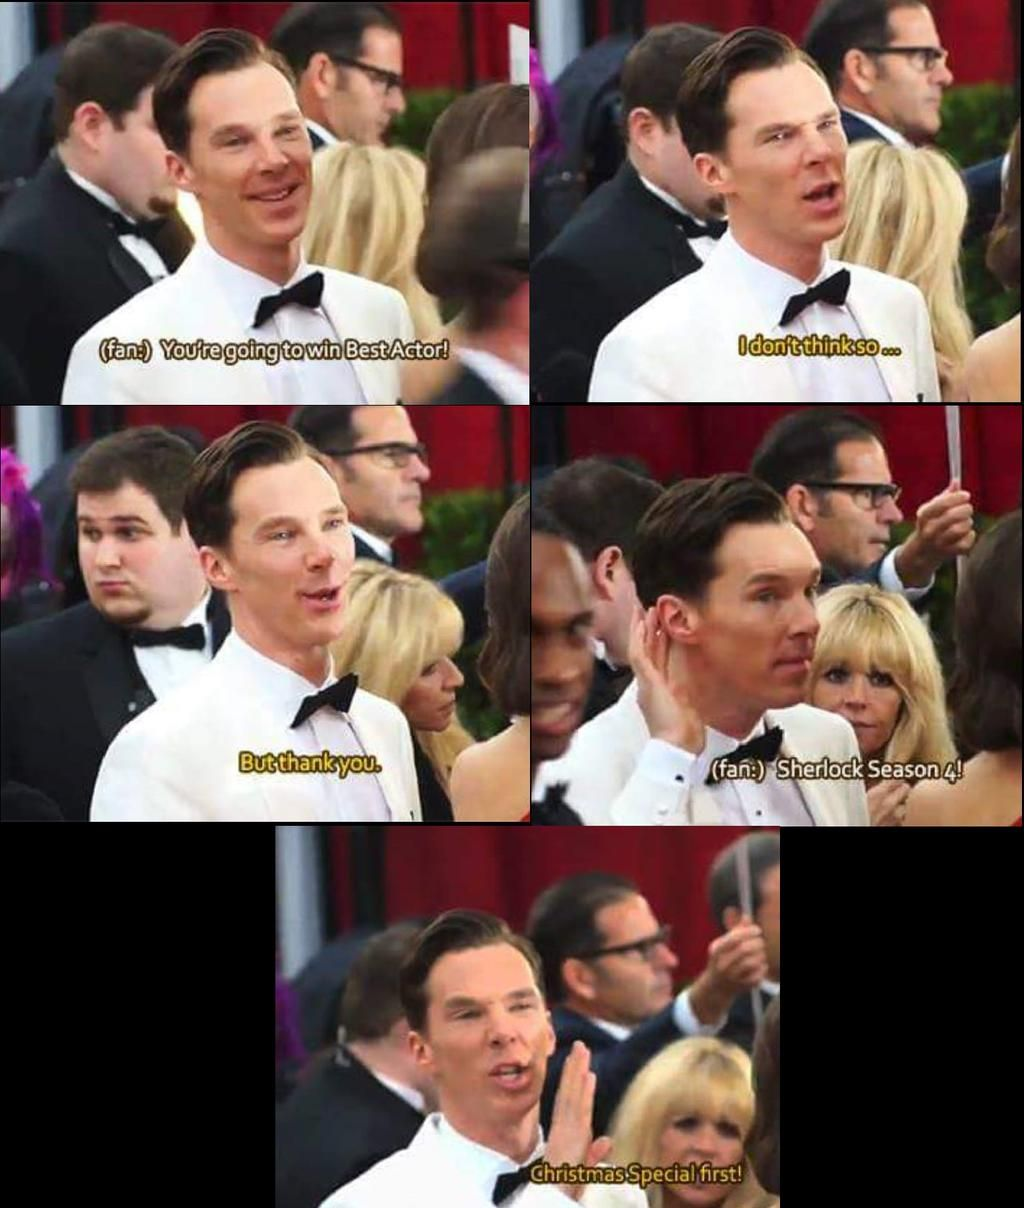 benedict cumberbatch everybody he certainly will get one someday - Watch Sherlock Christmas Special